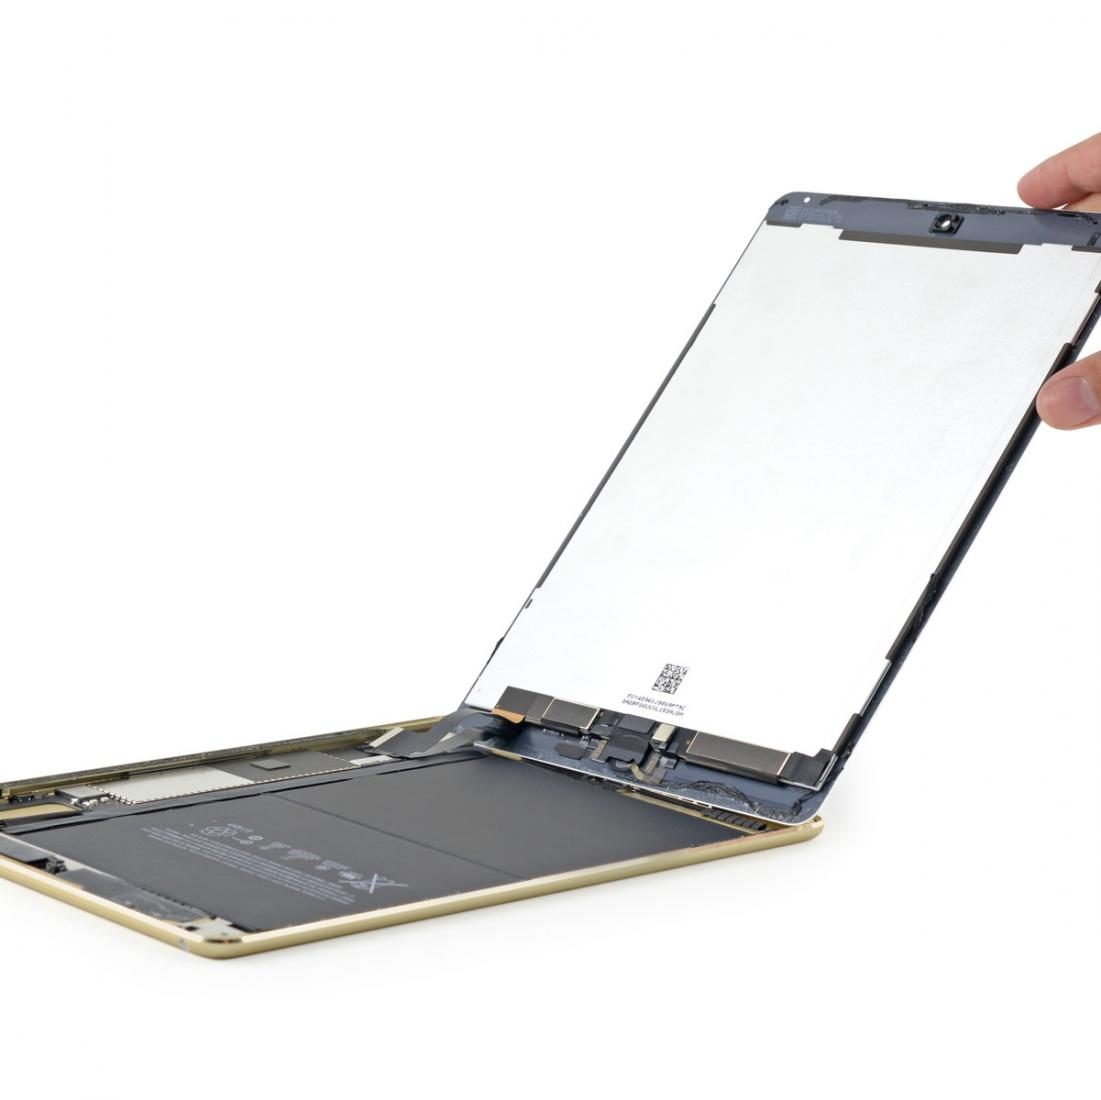 ipad air 2 ifixit findet kleineren akku 2gb. Black Bedroom Furniture Sets. Home Design Ideas